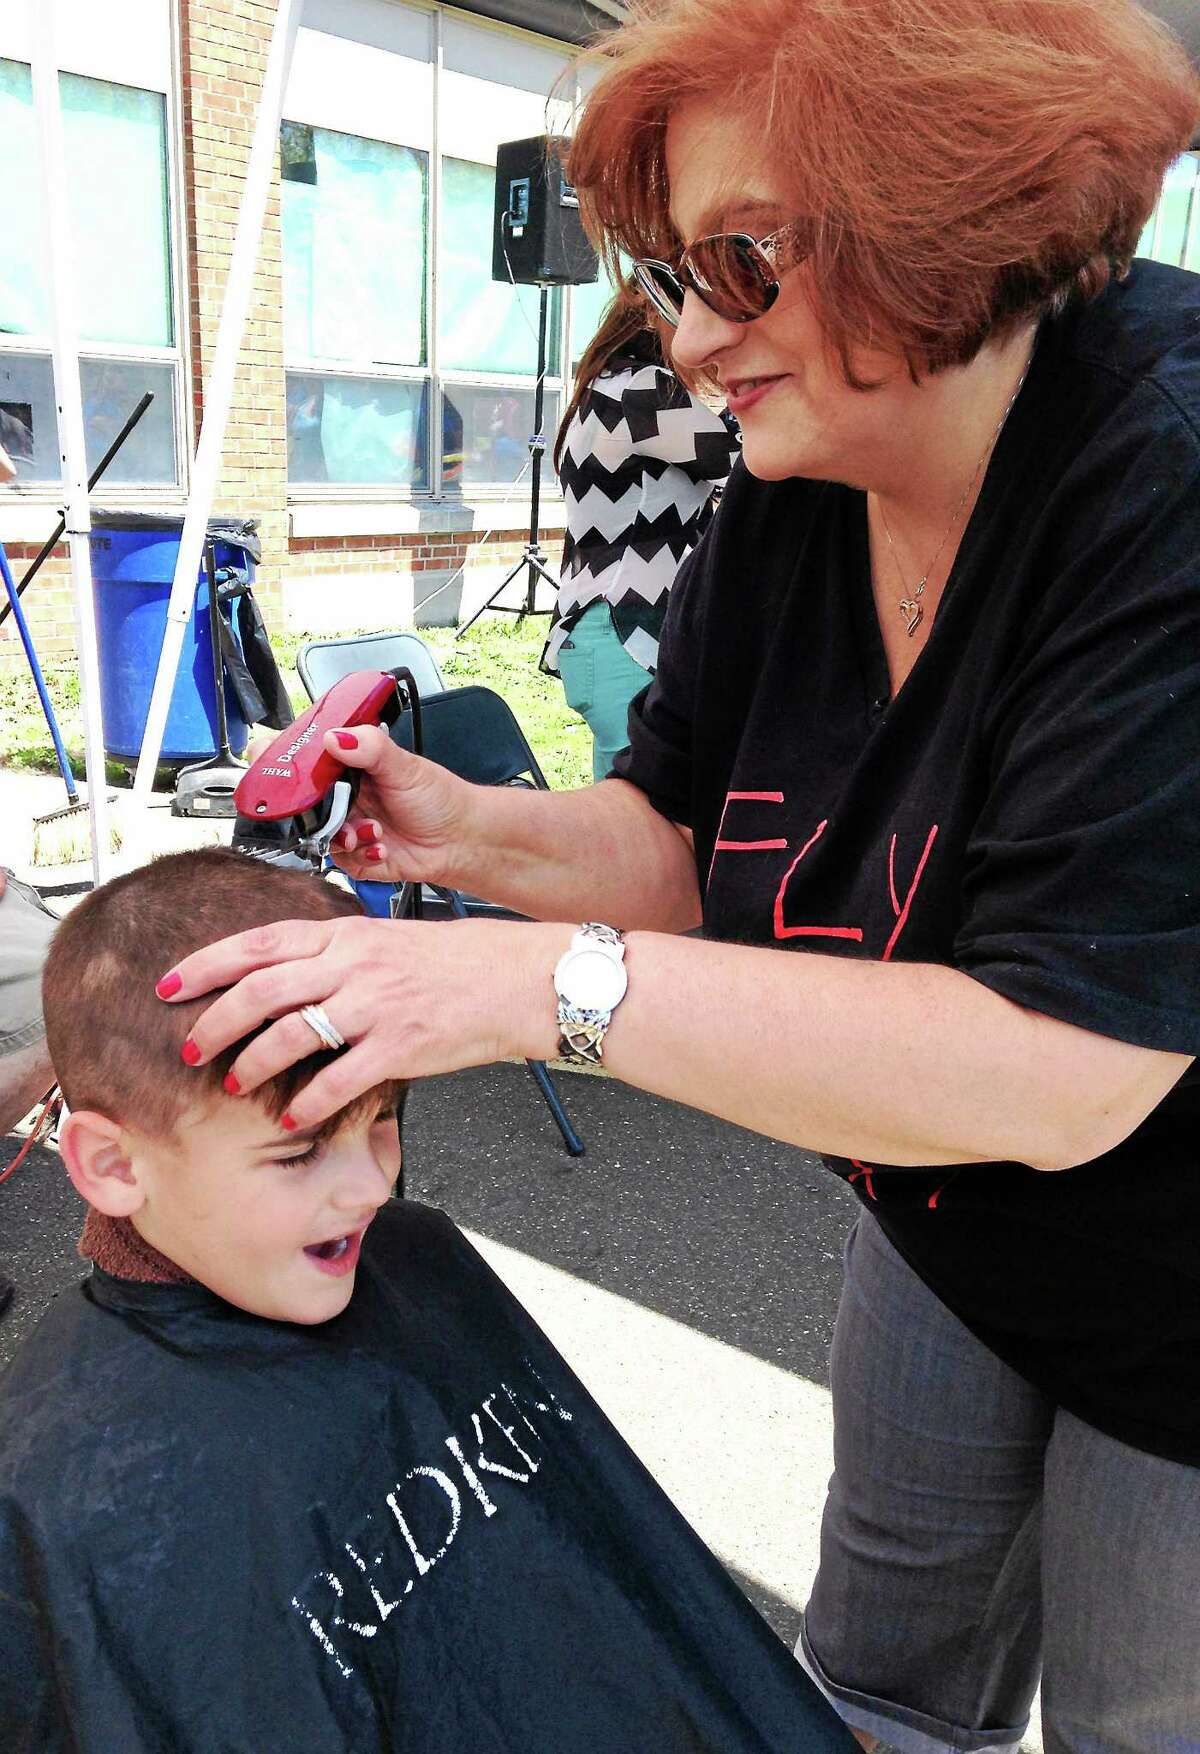 Gavin Fanelli, a student at Seth G. Haley Elementary School, gets his head shaved during the first Westie Day of Hope event at West Haven High School Sunday.